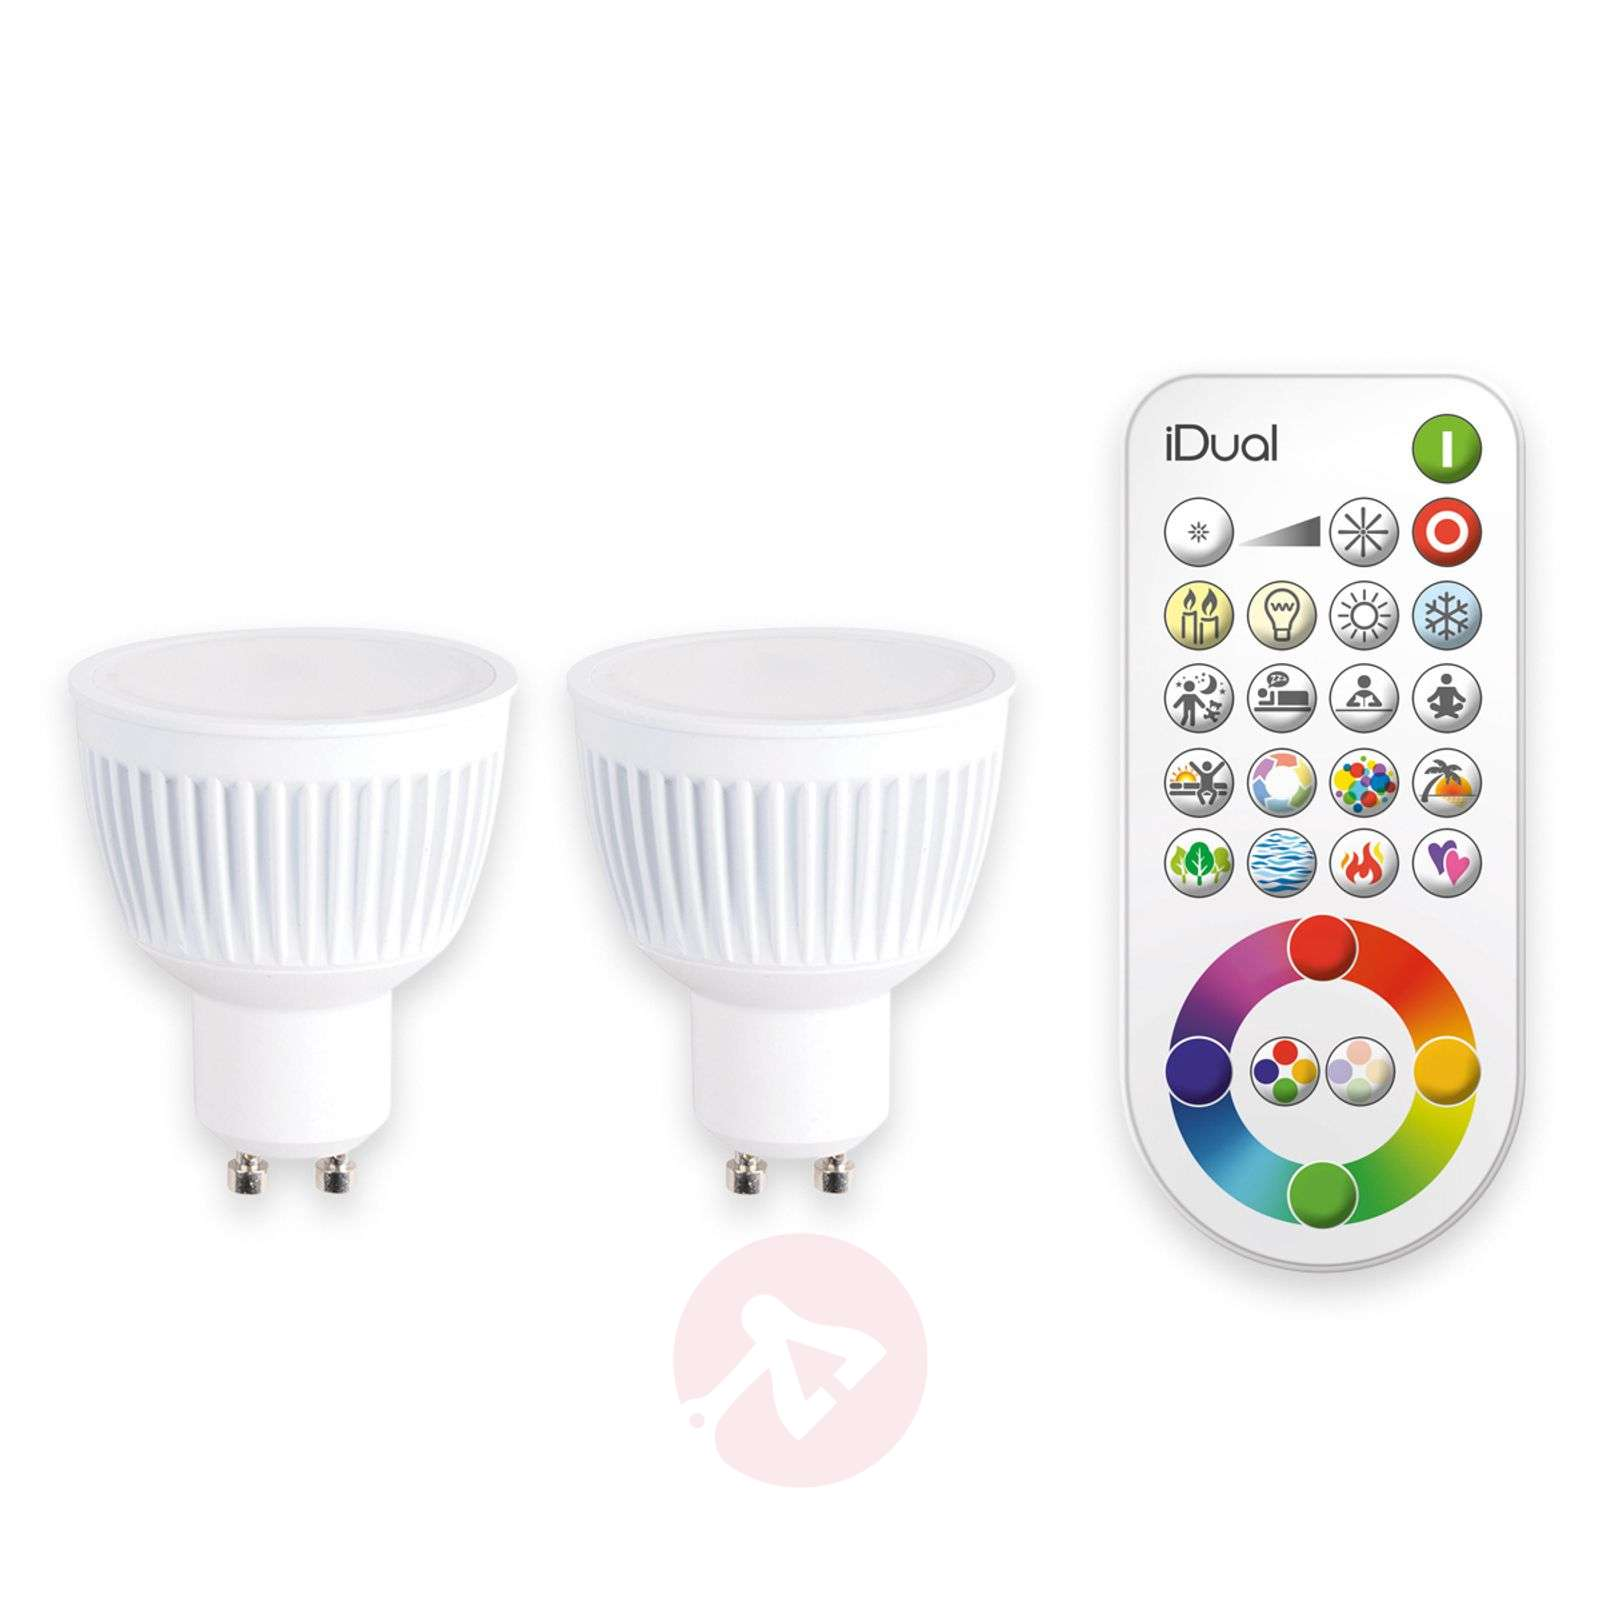 GU10 iDual LED bulb with remote control, set of 2-9038024-01